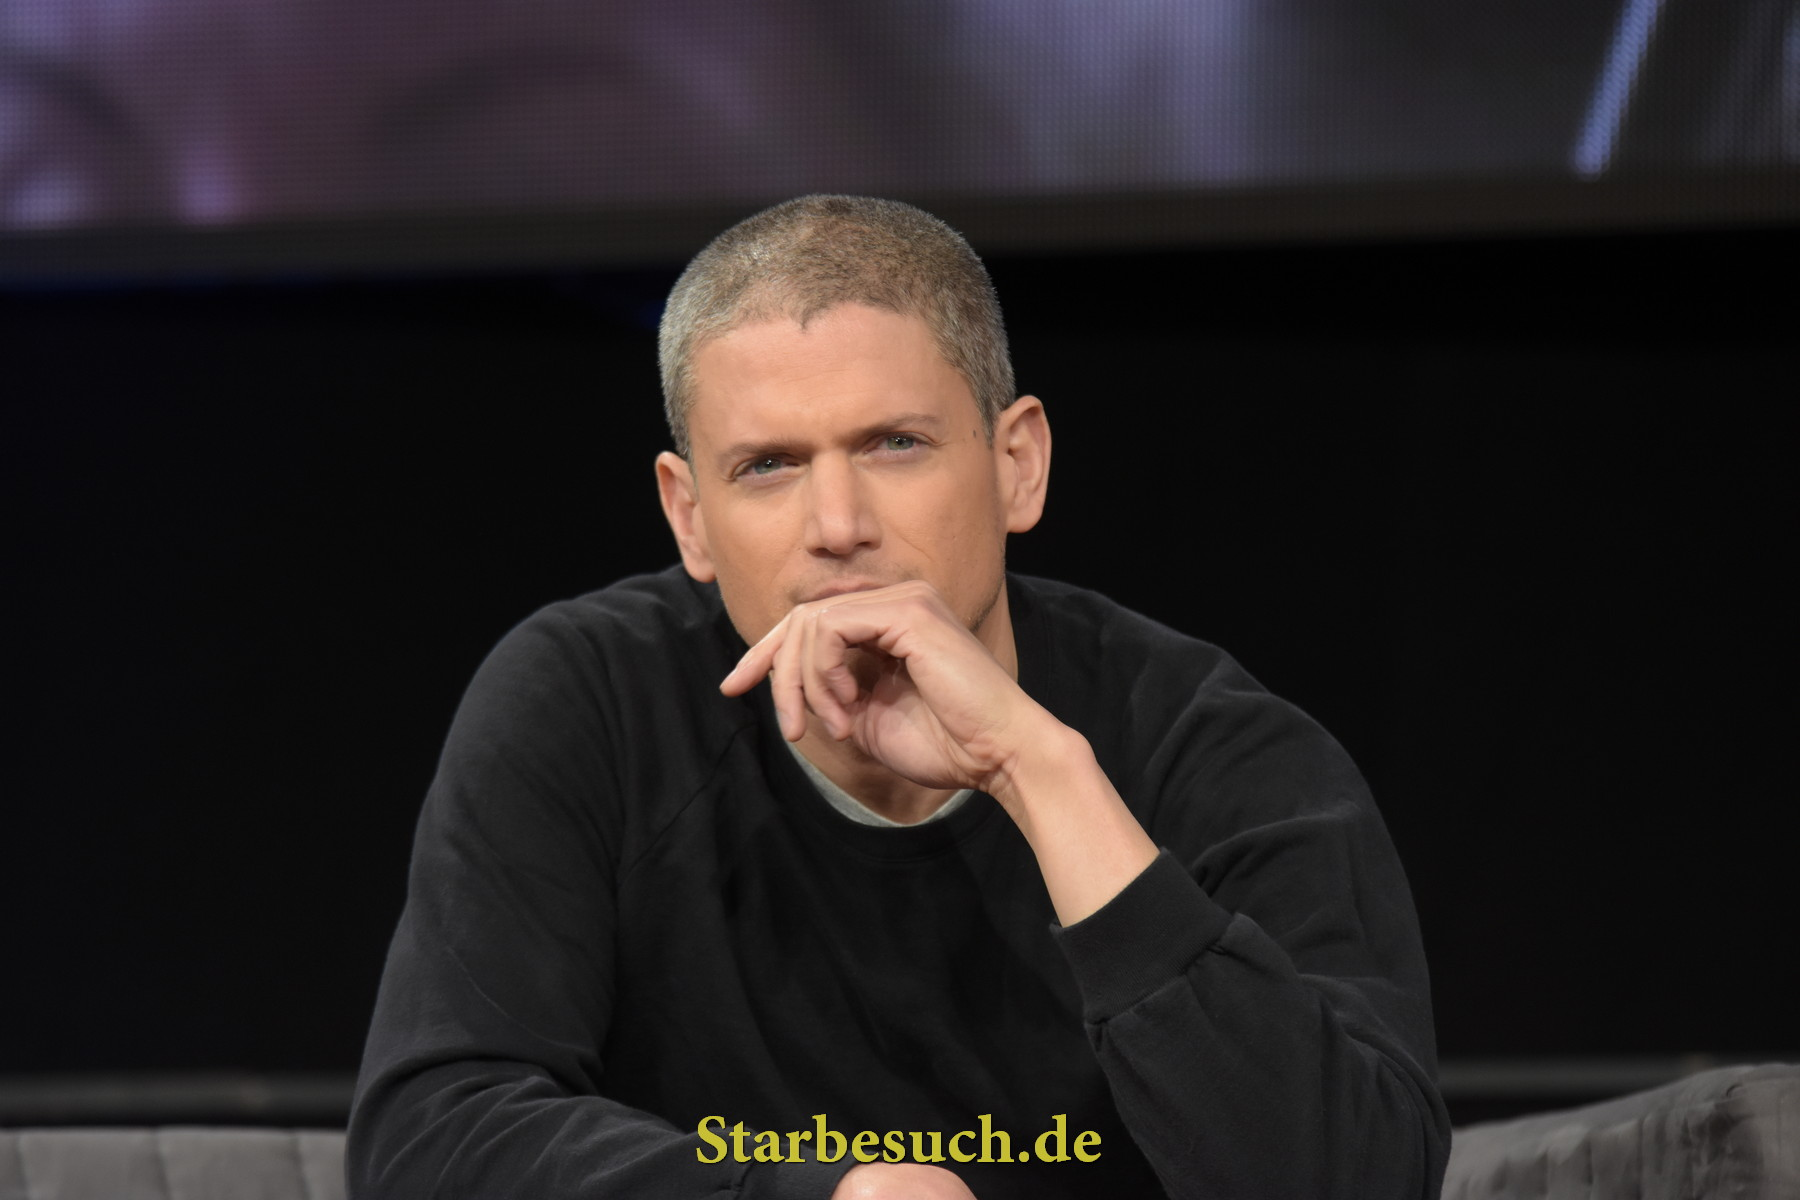 Dortmund, Germany - December 9th 2017: US Actor Wentworth Miller (* 1972, Prison Break, The Flash, DC's Legends of Tomorrow, Resident Evil: Afterlife) at German Comic Con Dortmund.